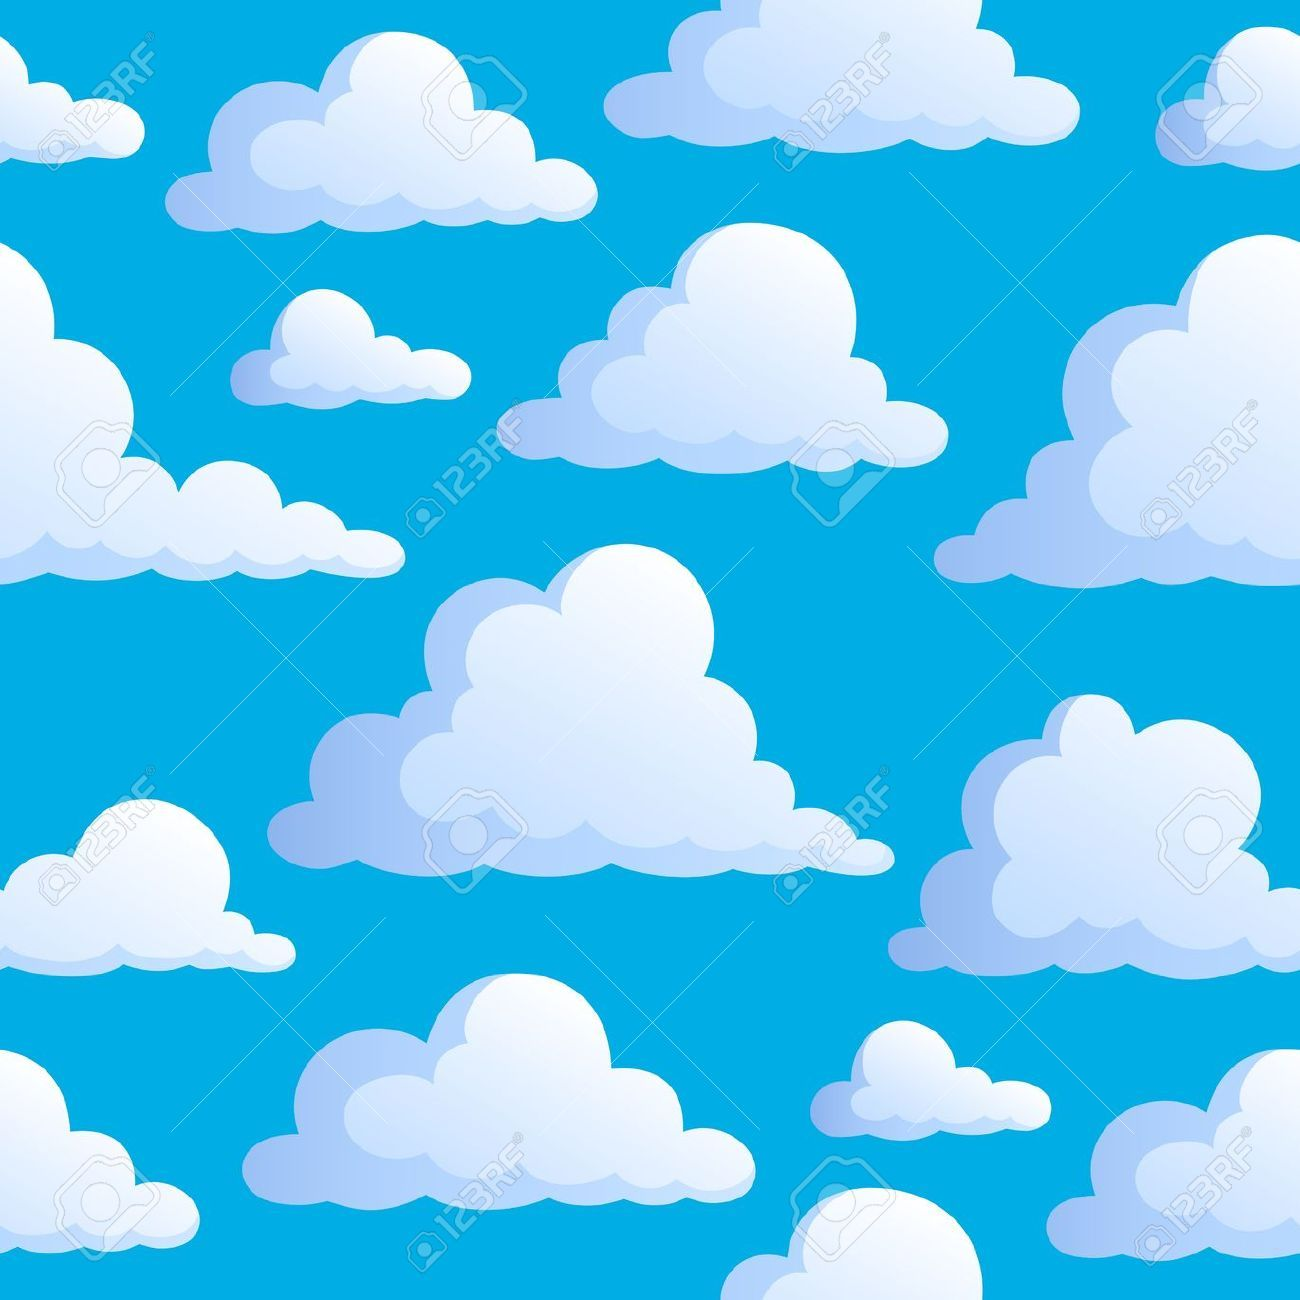 cloudy day clip art